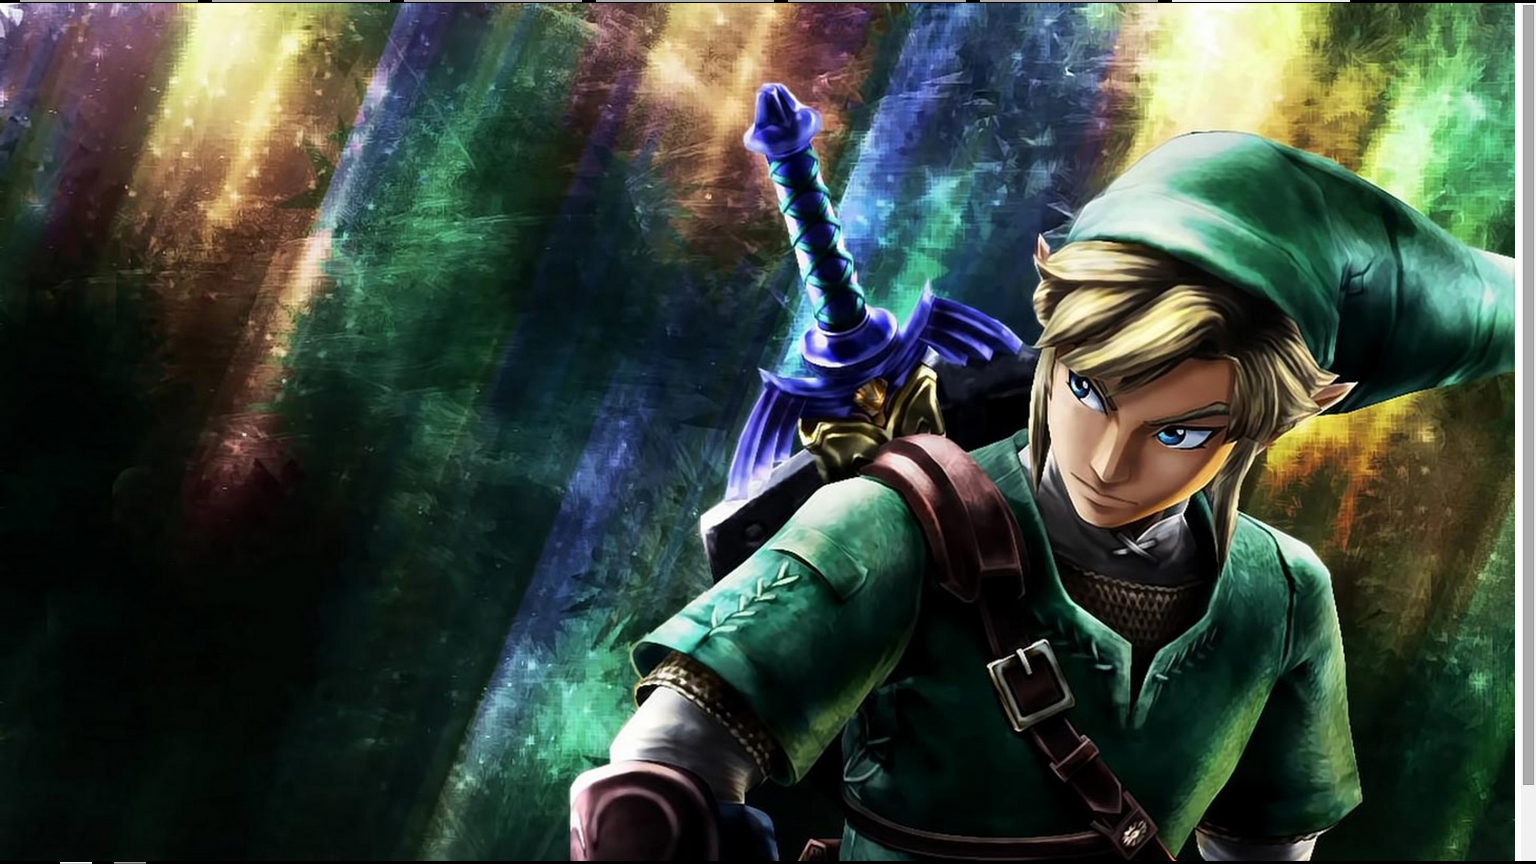 Cool Loz Wallpaper The Legend Of Zelda Ocarina Of Time Photo